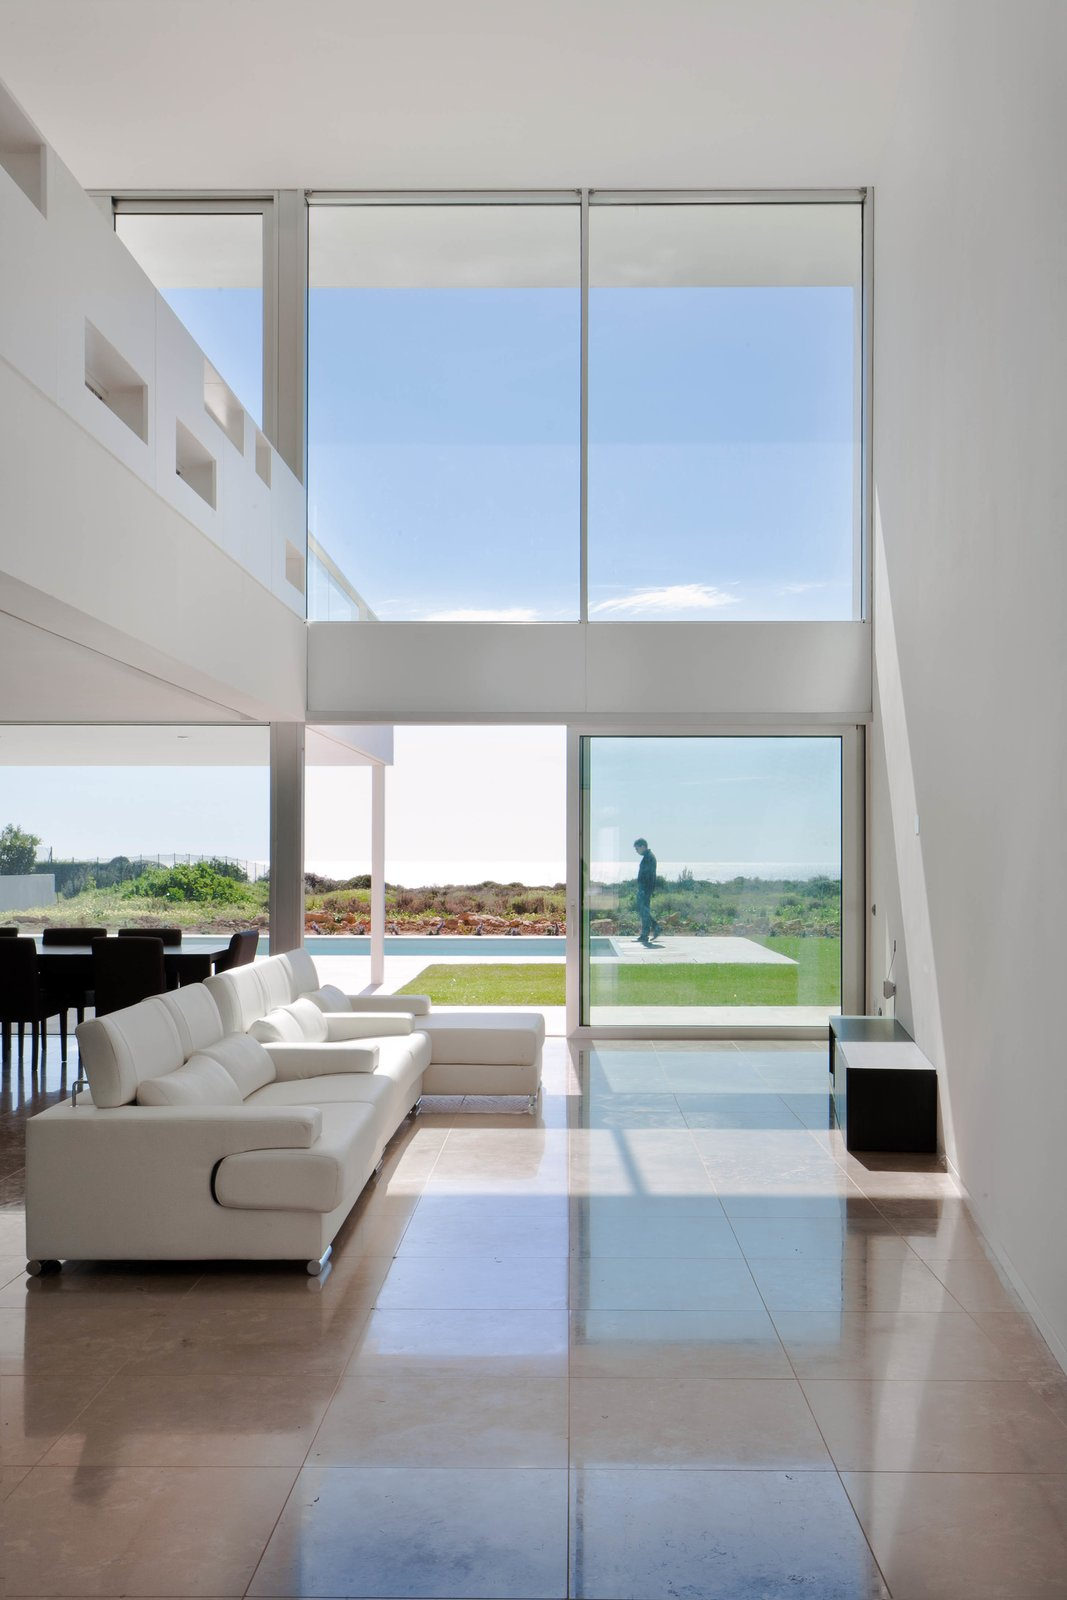 The open kitchen, dining, and living area boasts high ceilings above and natural stone tiles below. Sliding glass doors lead to the outdoor patio and heated pool.  Photo 2 of 8 in Spotlight on Portugal: 7 Epic Modern Spaces from Make This Seaside Villa in Southern Portugal Your Own Private Resort For $2M